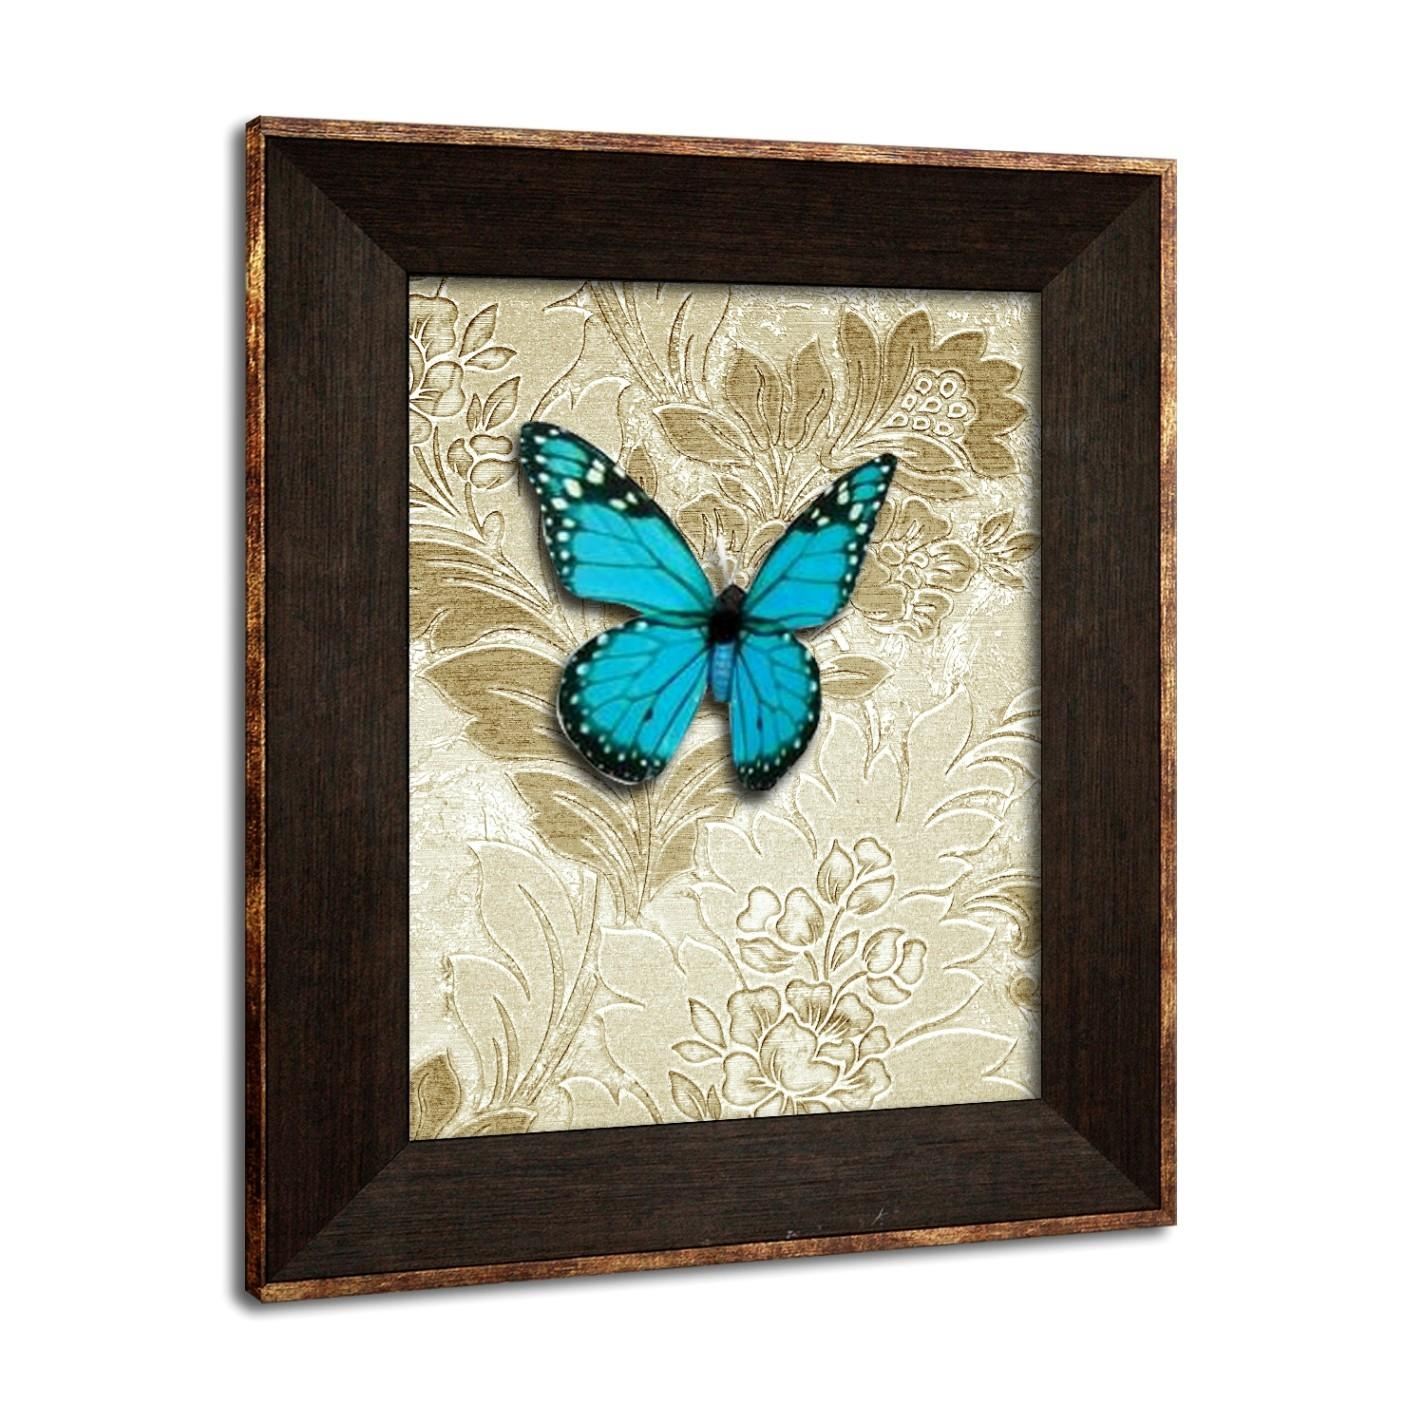 Awesome Turquoise Butterfly Wall Decor In Turquoise And Brown Wall Art (View 16 of 20)